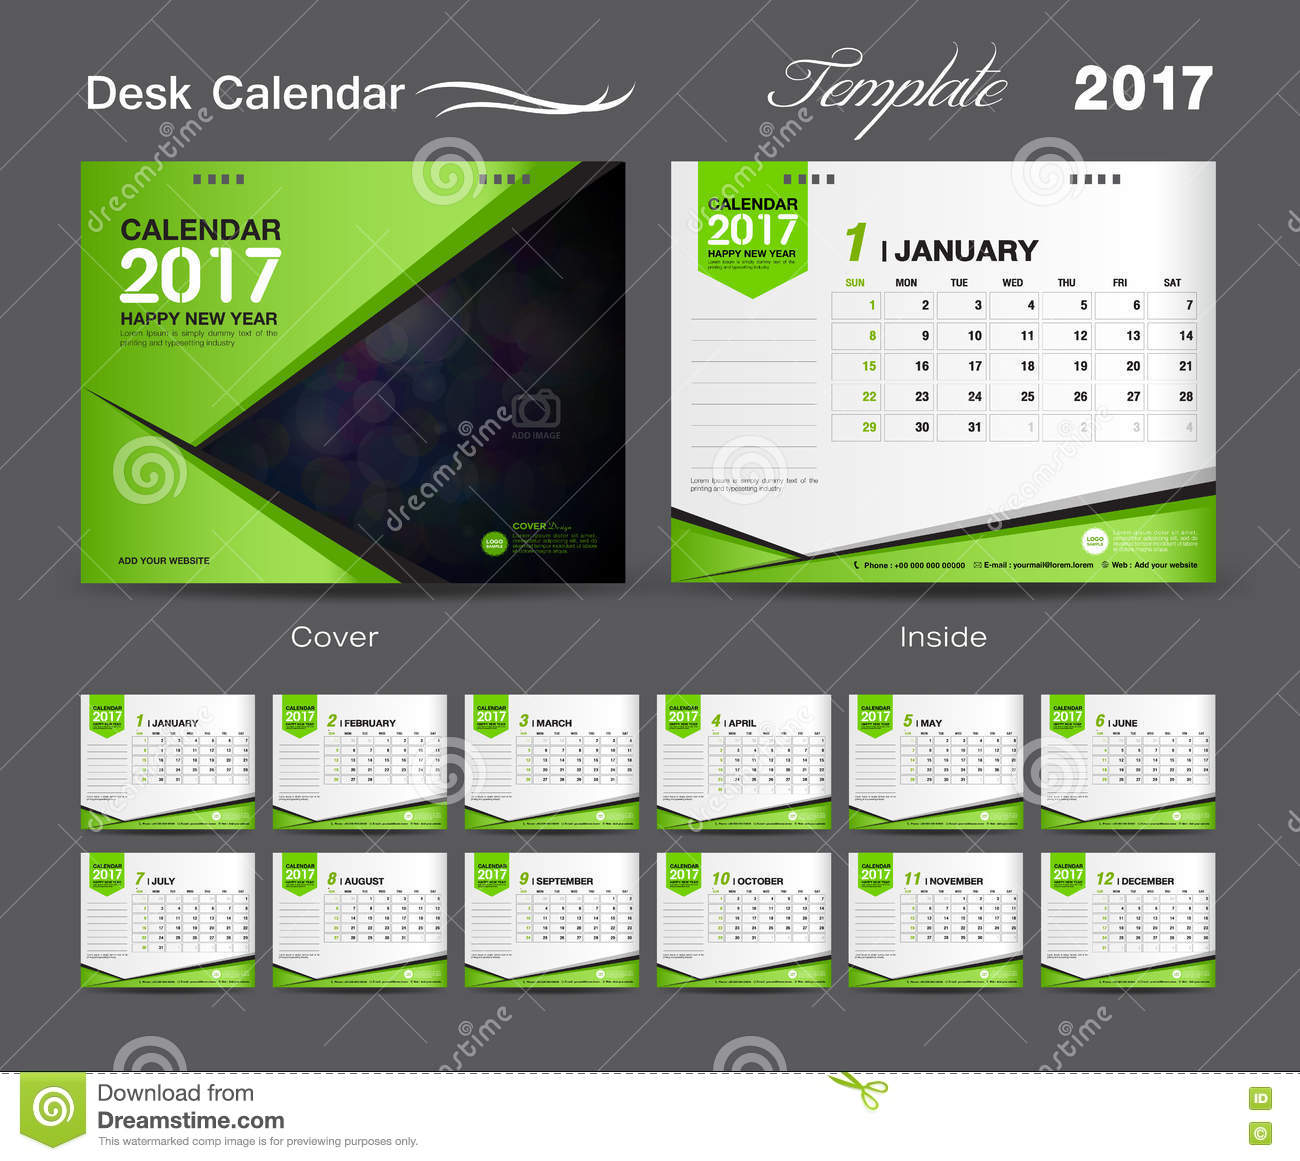 Calendar Cover Design 2014 : Set green desk calendar template design cover